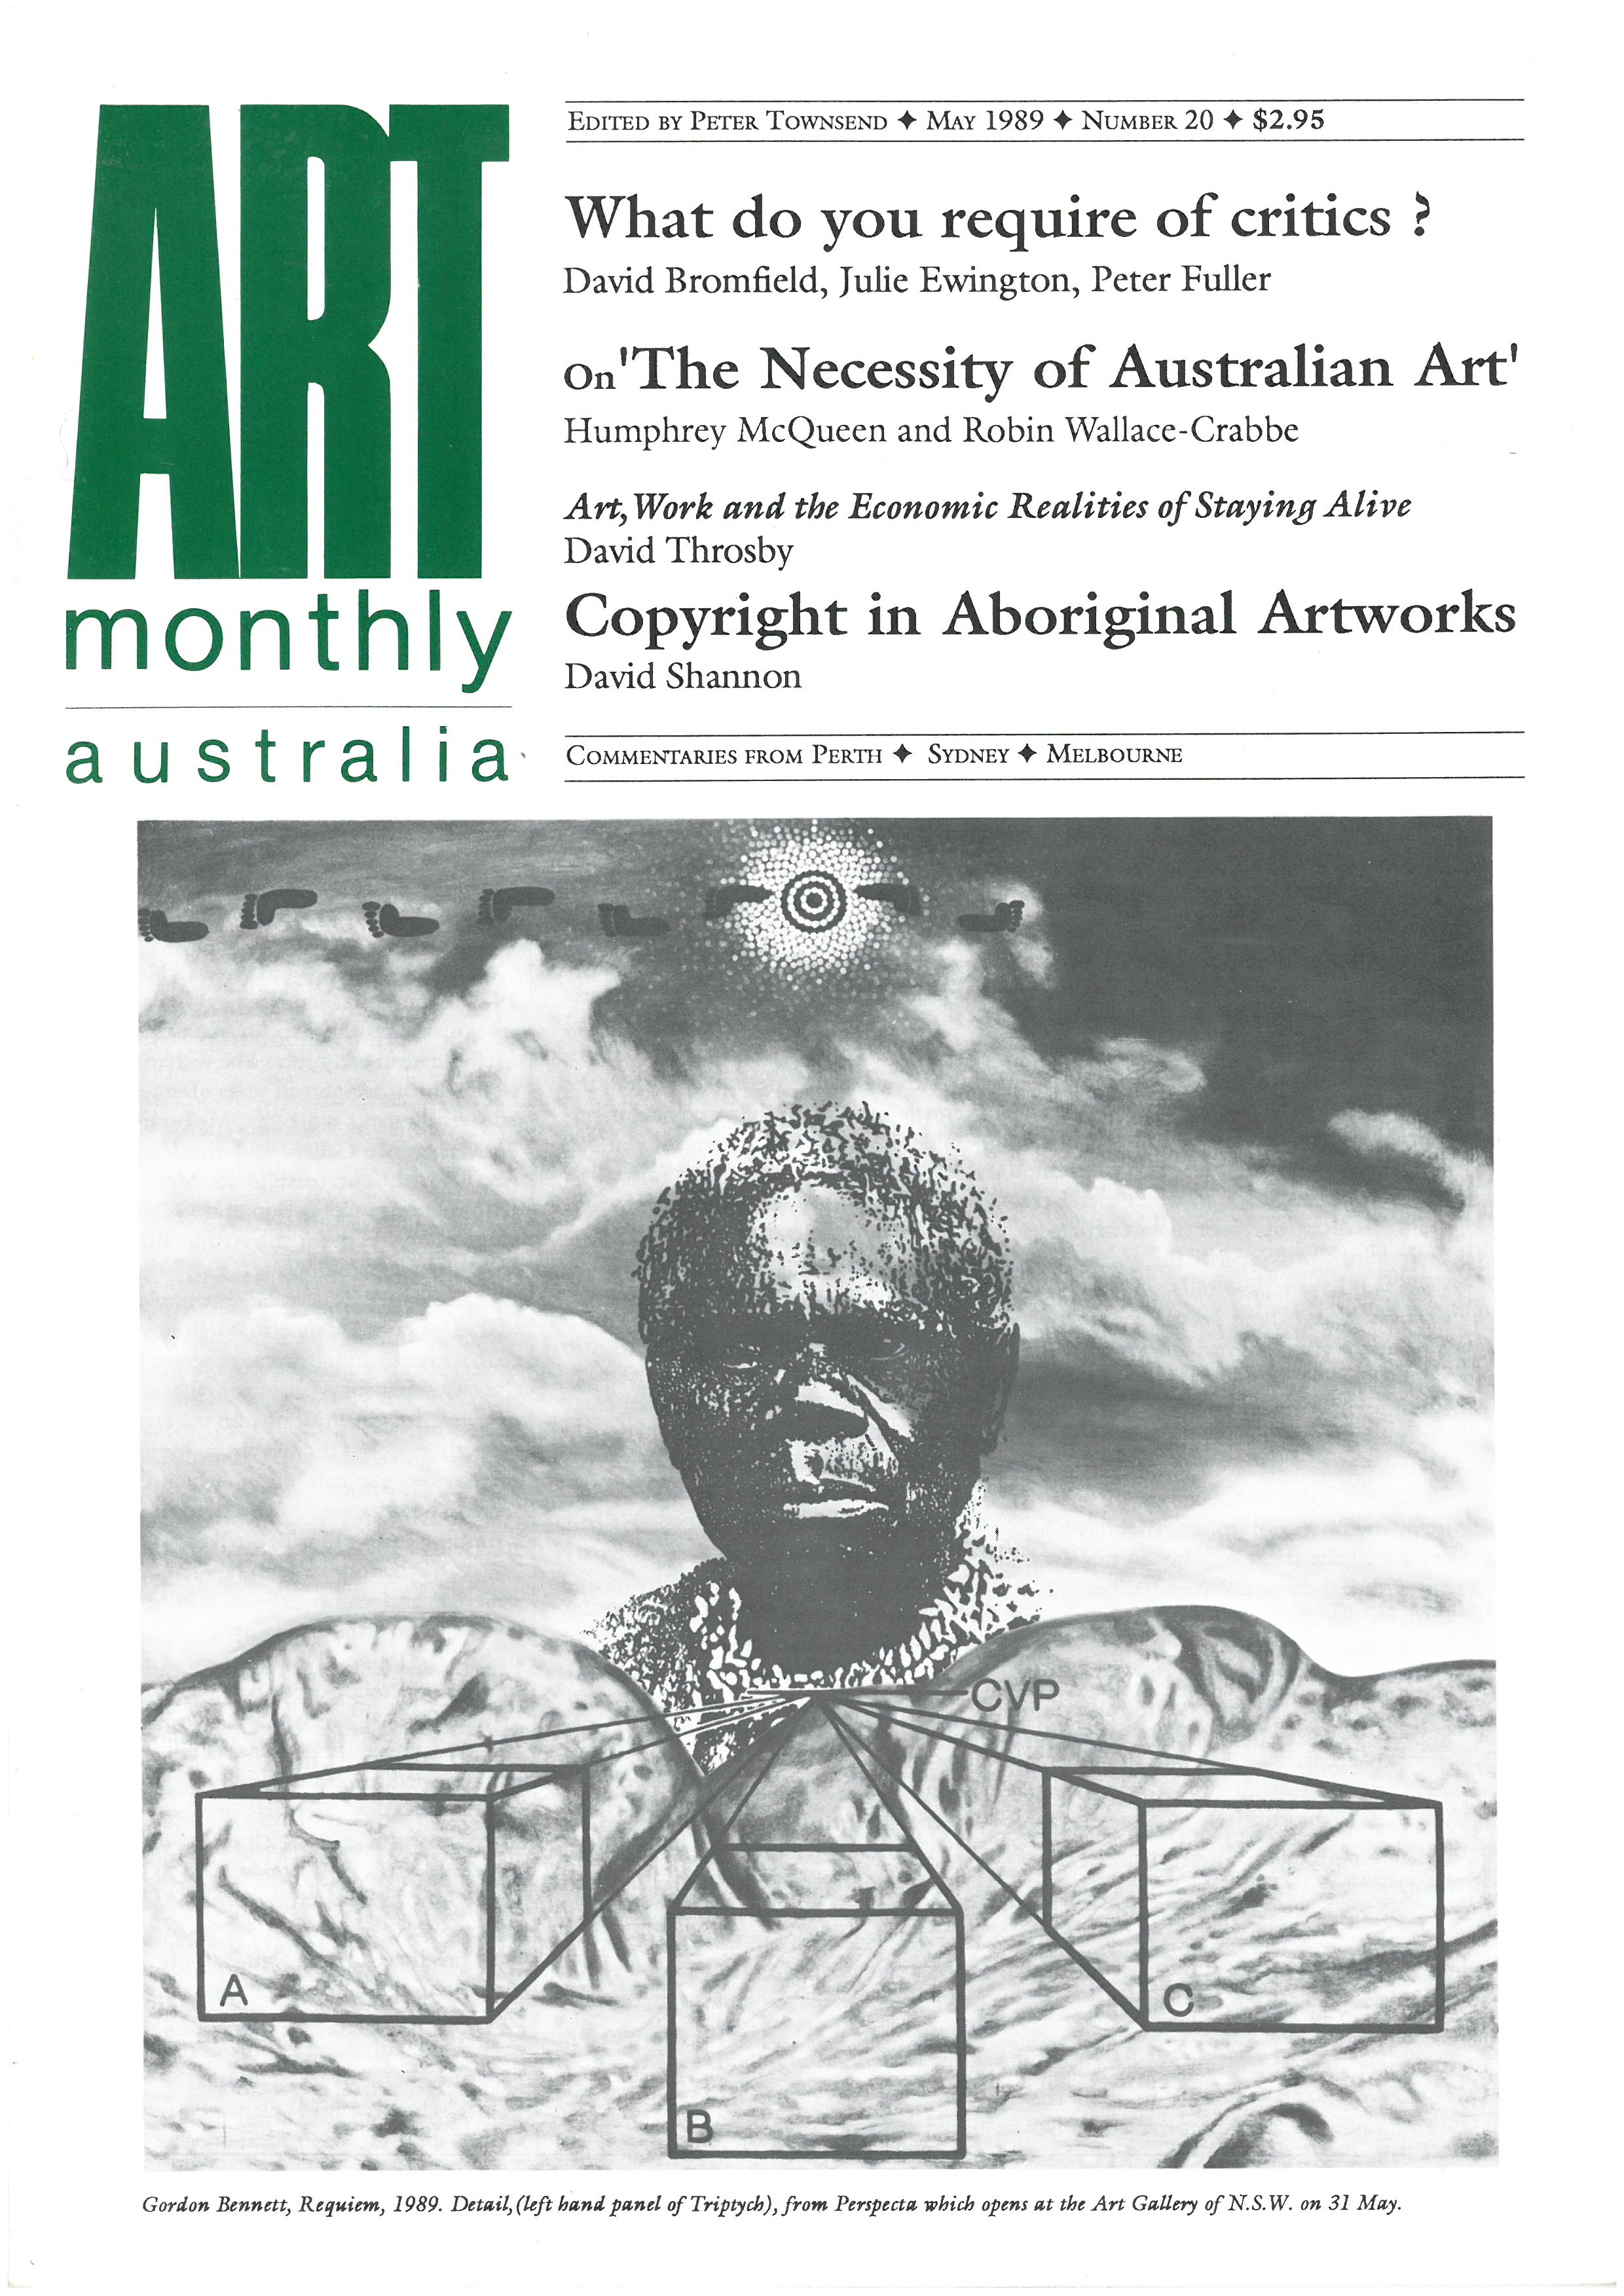 Issue 20 May 1989